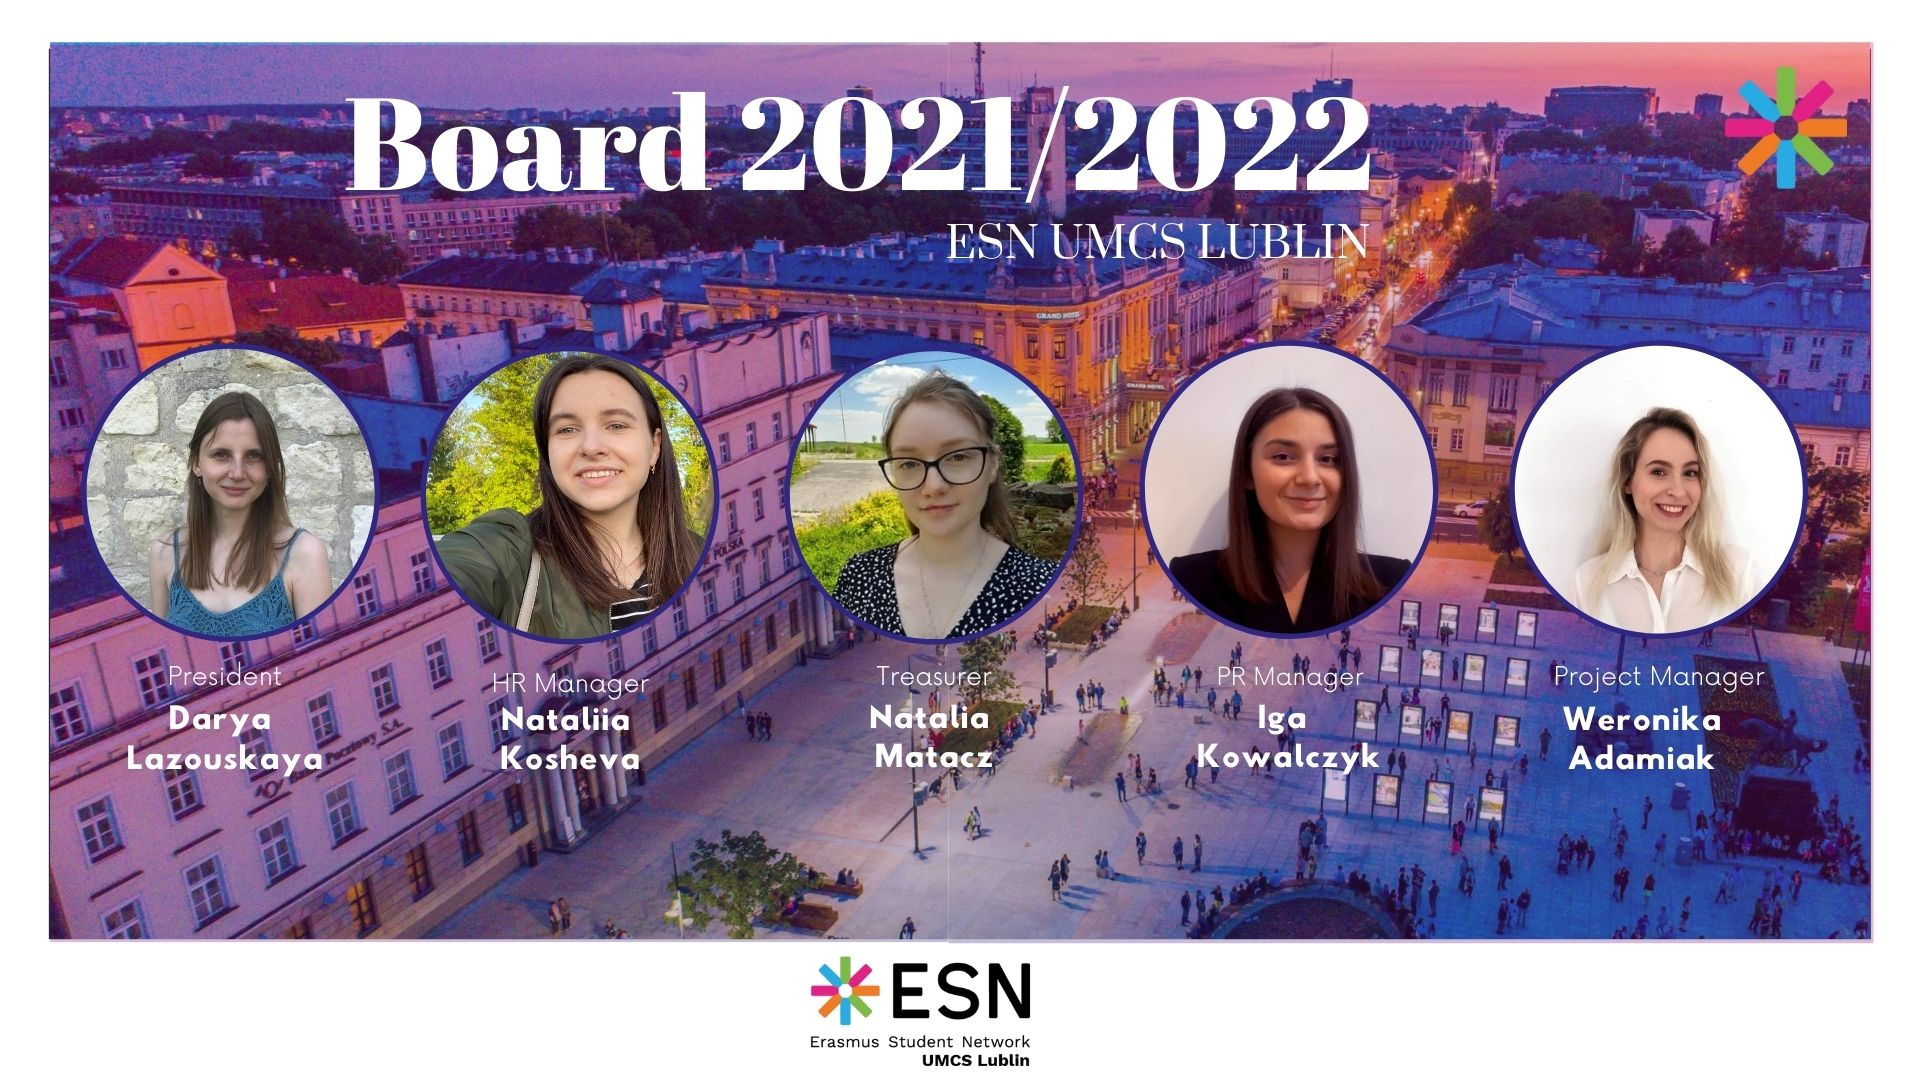 Our new board 2021/2022